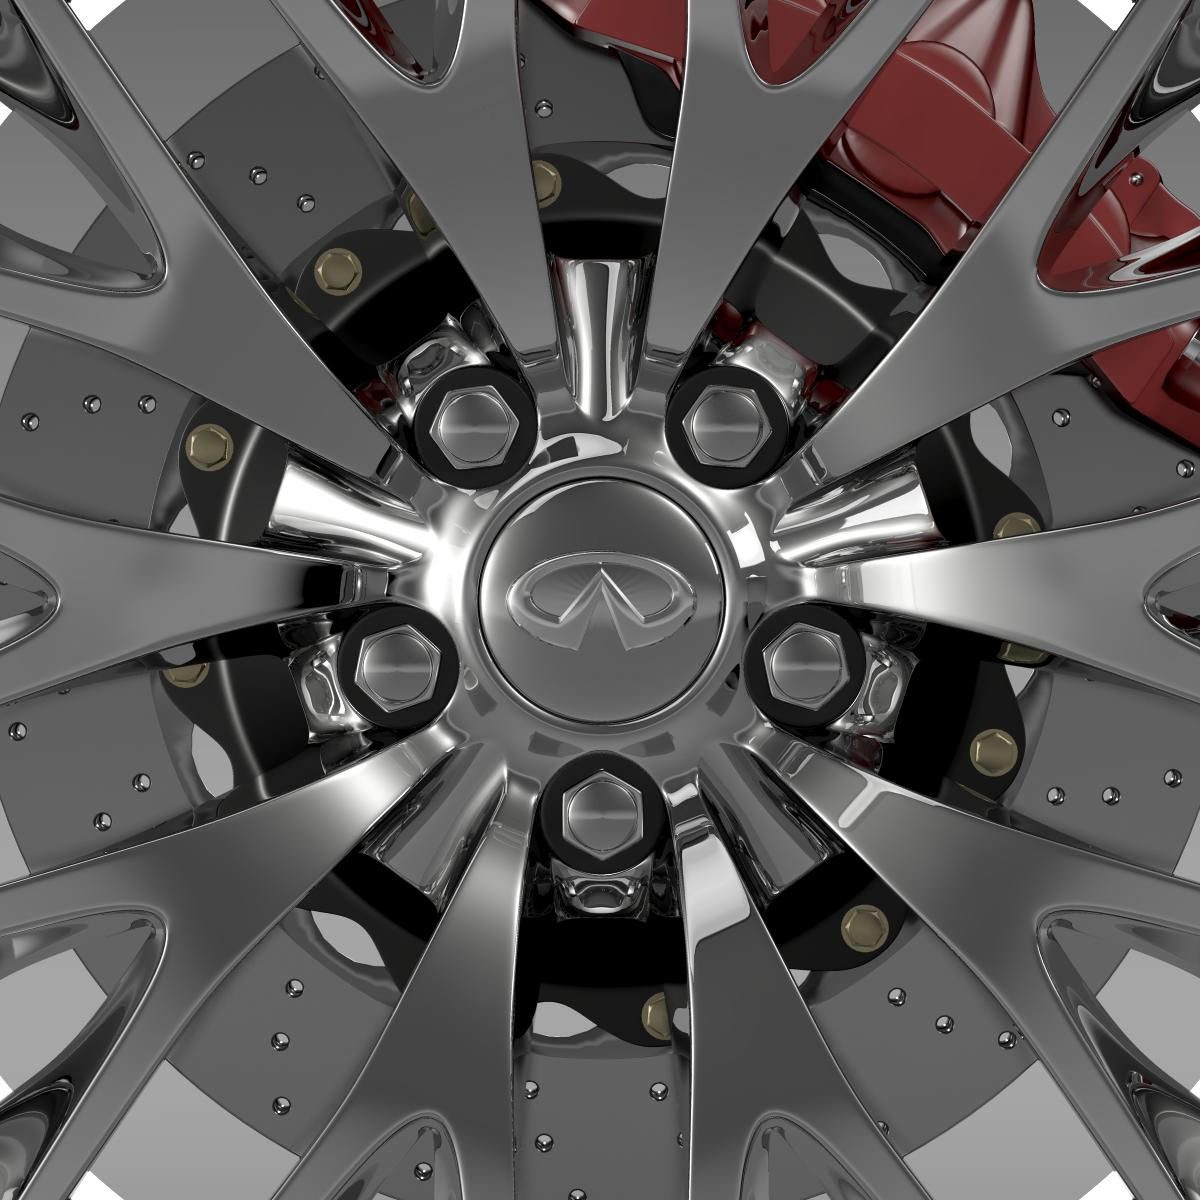 infinity ml wheel 3d model 3ds max fbx c4d lwo ma mb hrc xsi obj 210701